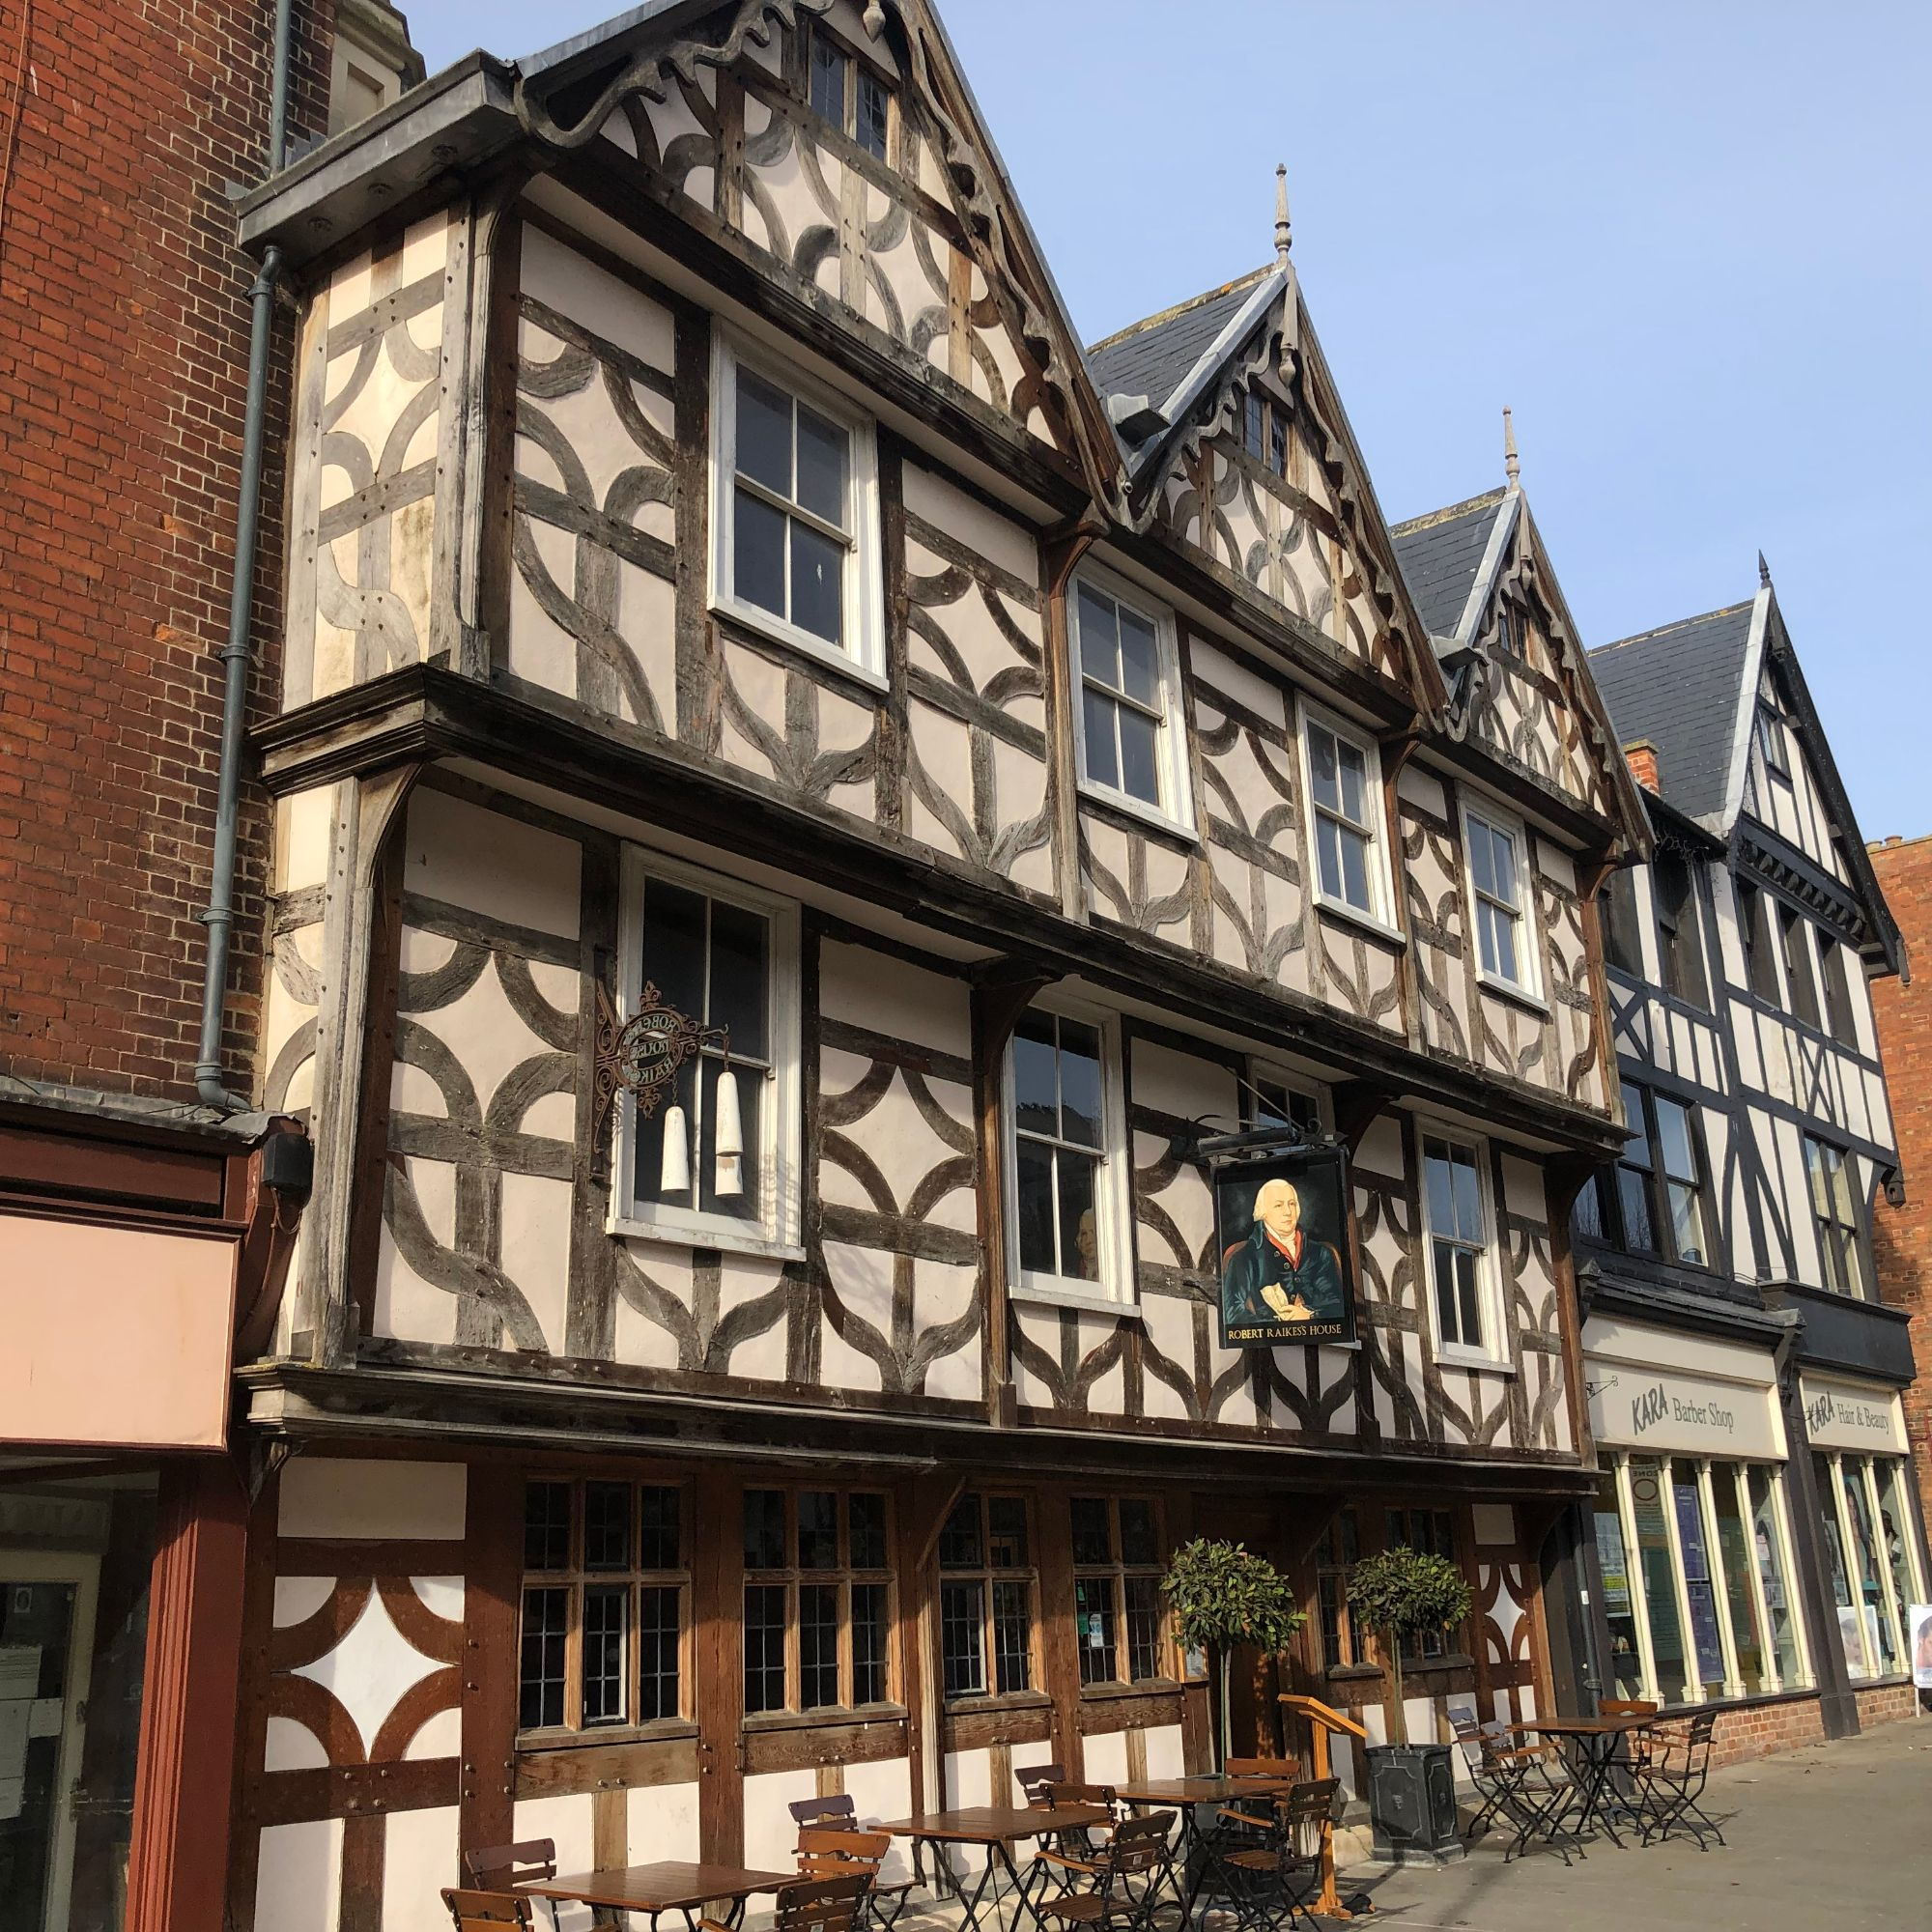 Free stock photo timber frame medieval building Gloucester city